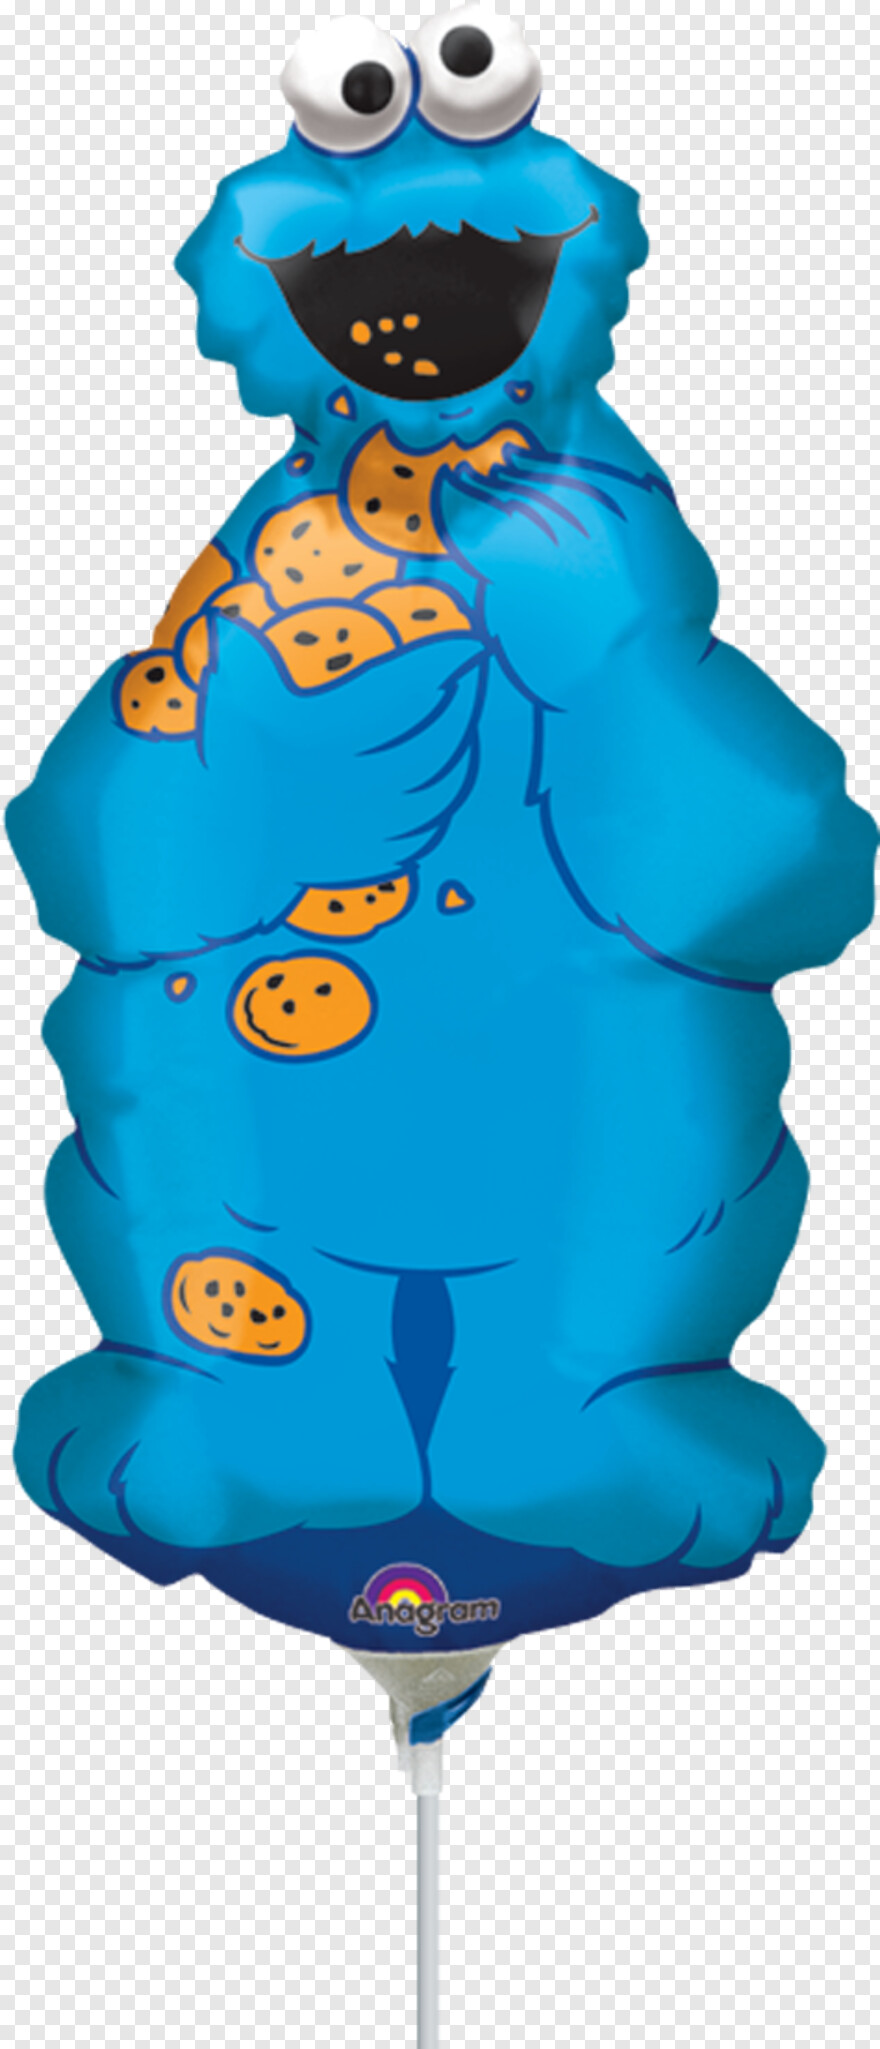 Upc Code Cookie Monster Small Balloons Transparent Png